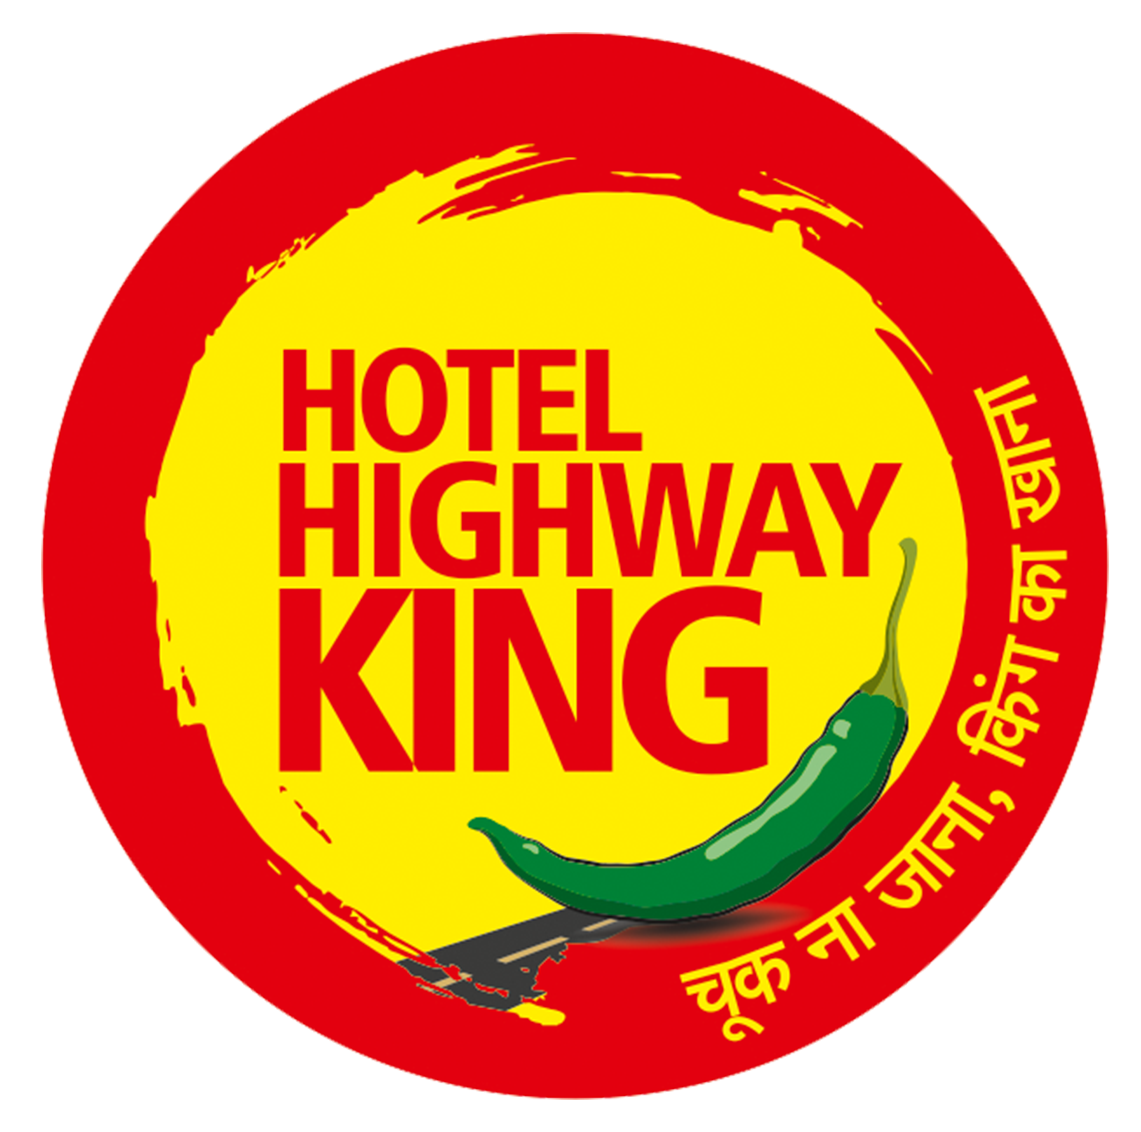 Hotel Highway King